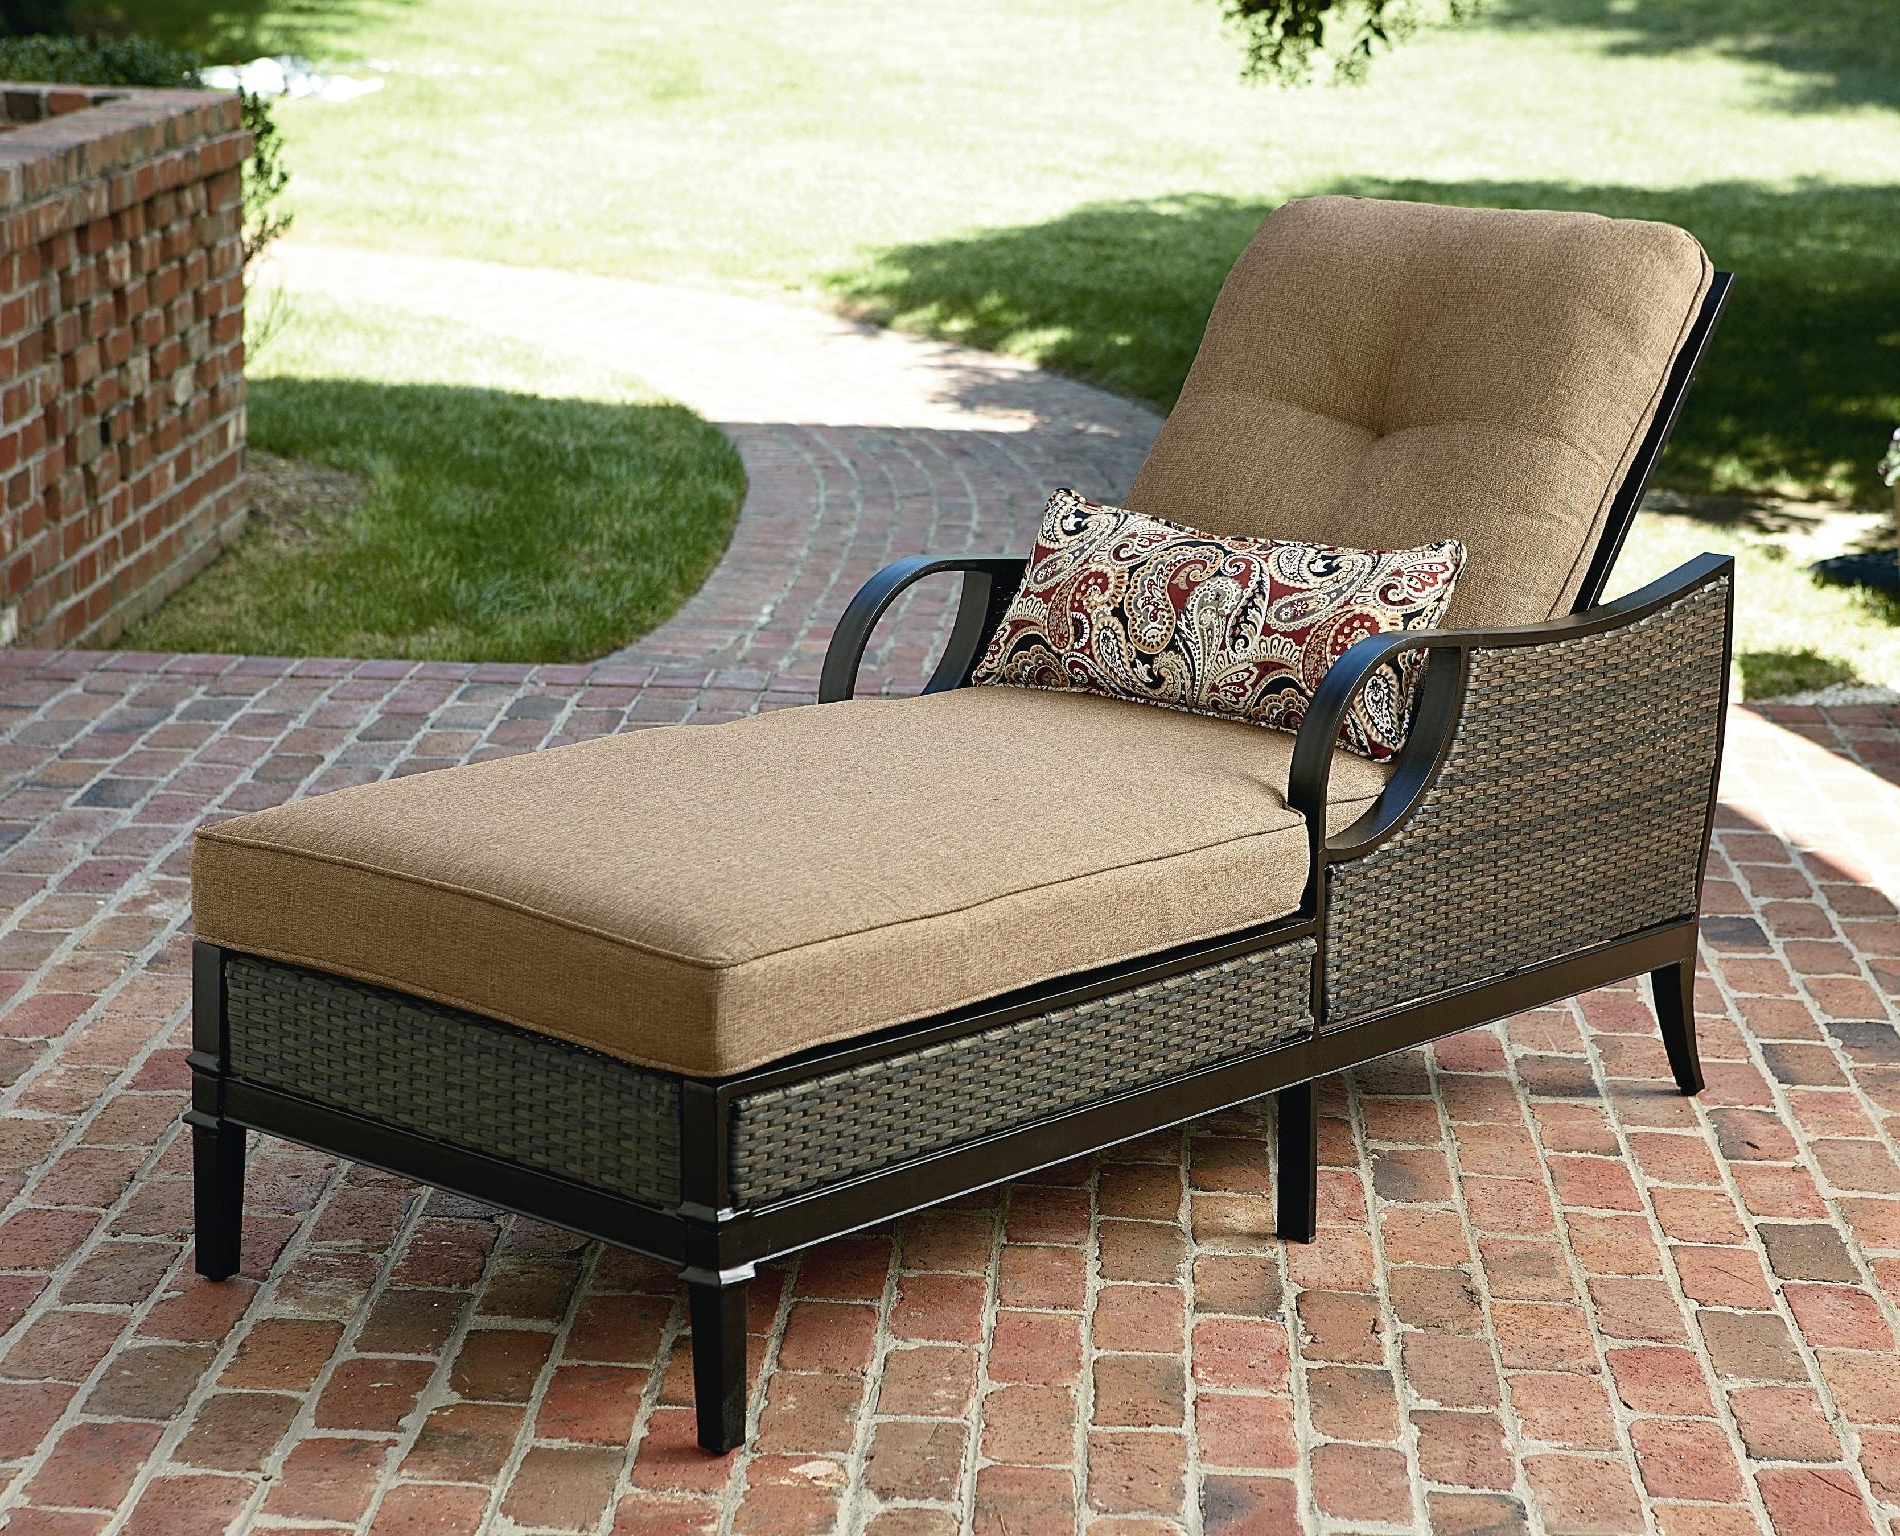 Well Liked Chaise Lounge Patio Chairs Inside Patio Furniture Chaise Lounge Chairs • Lounge Chairs Ideas (View 15 of 15)